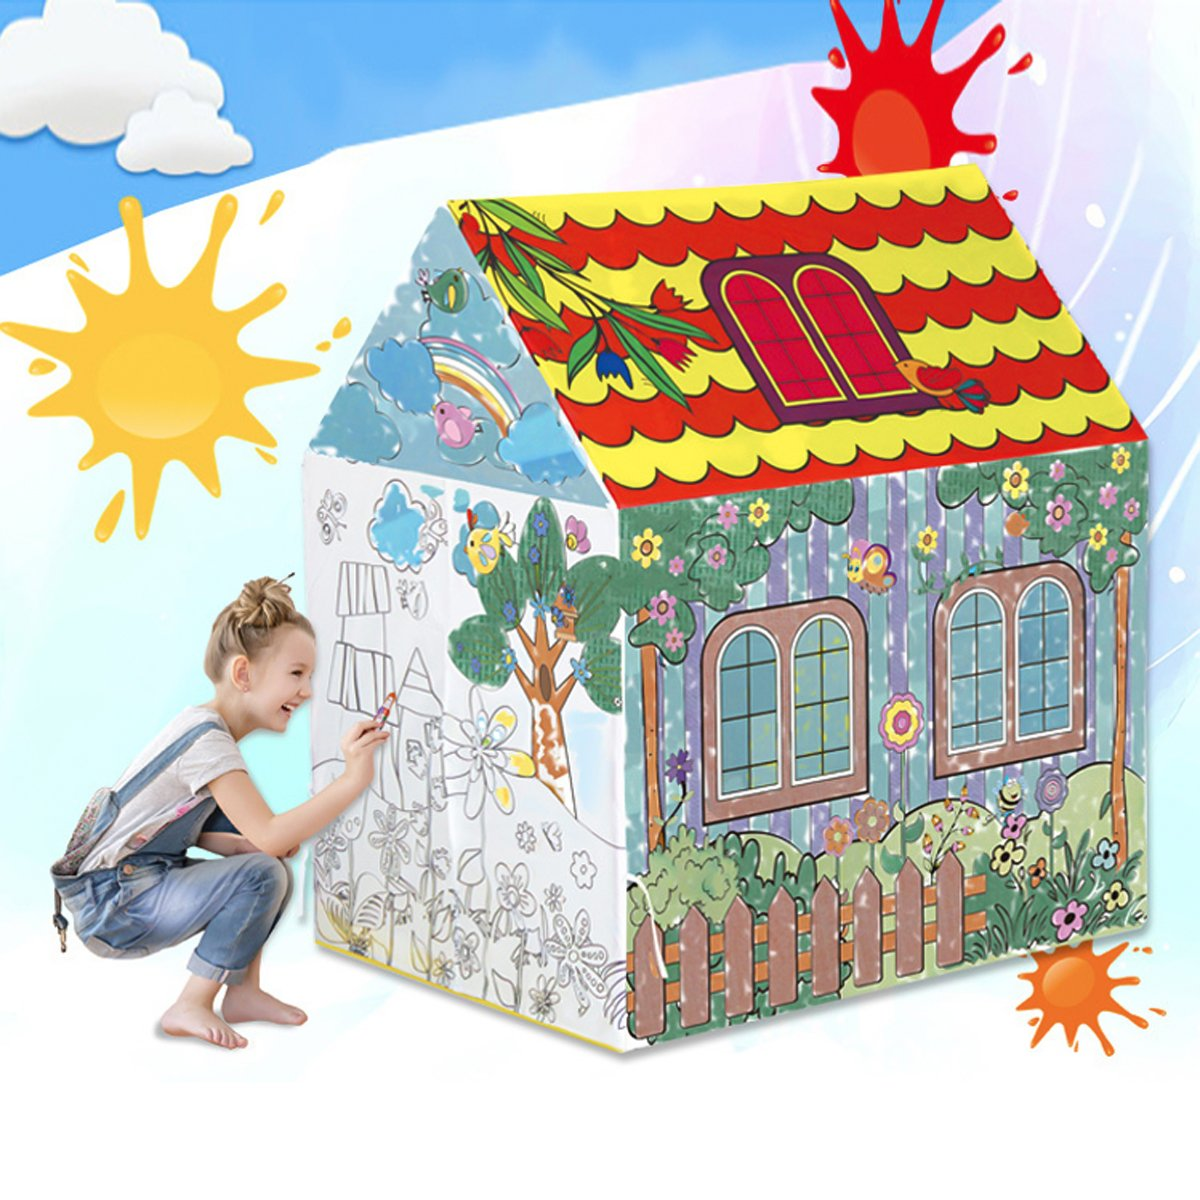 VeraCasa Washable Color Playhouse for Kids I I Children Indoor Play Tent I Bonus 8 Color Markers I Best Indoor DIY Activity for Girls